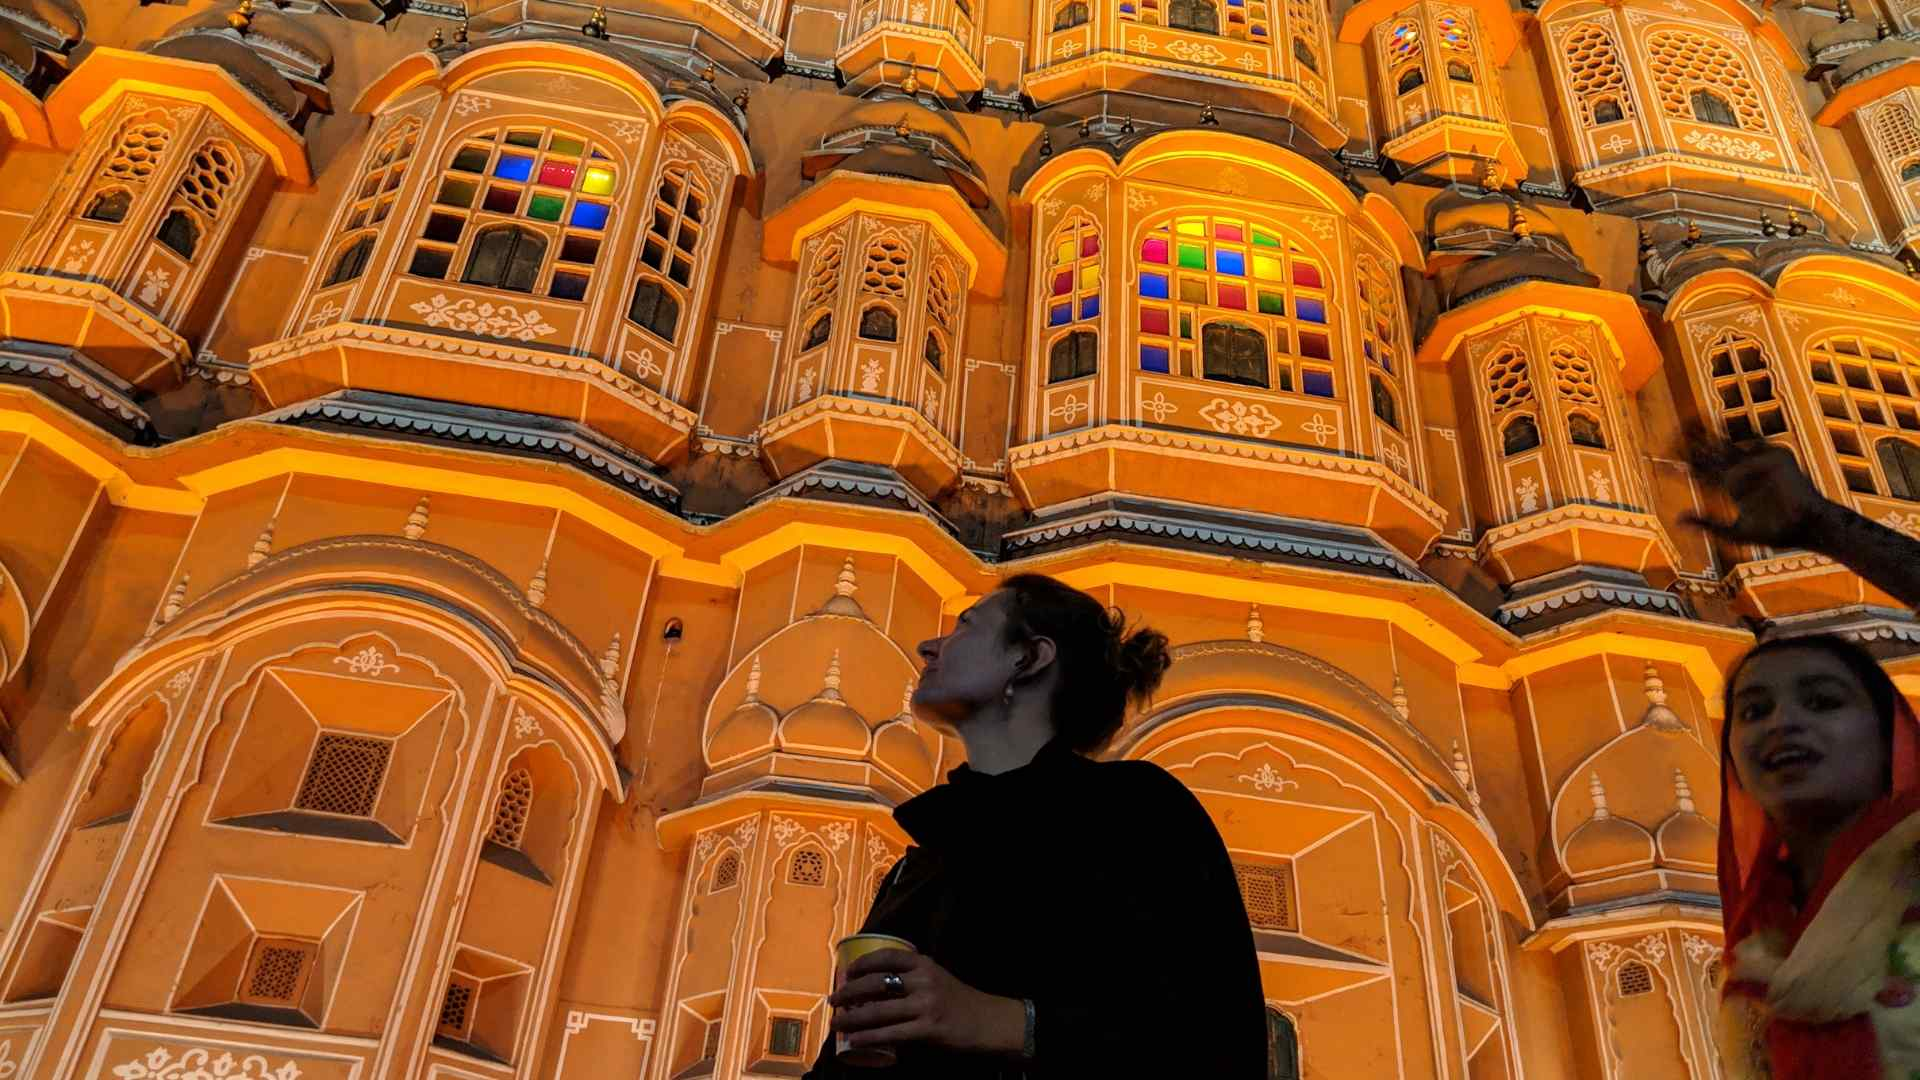 Below Hawa Mahal